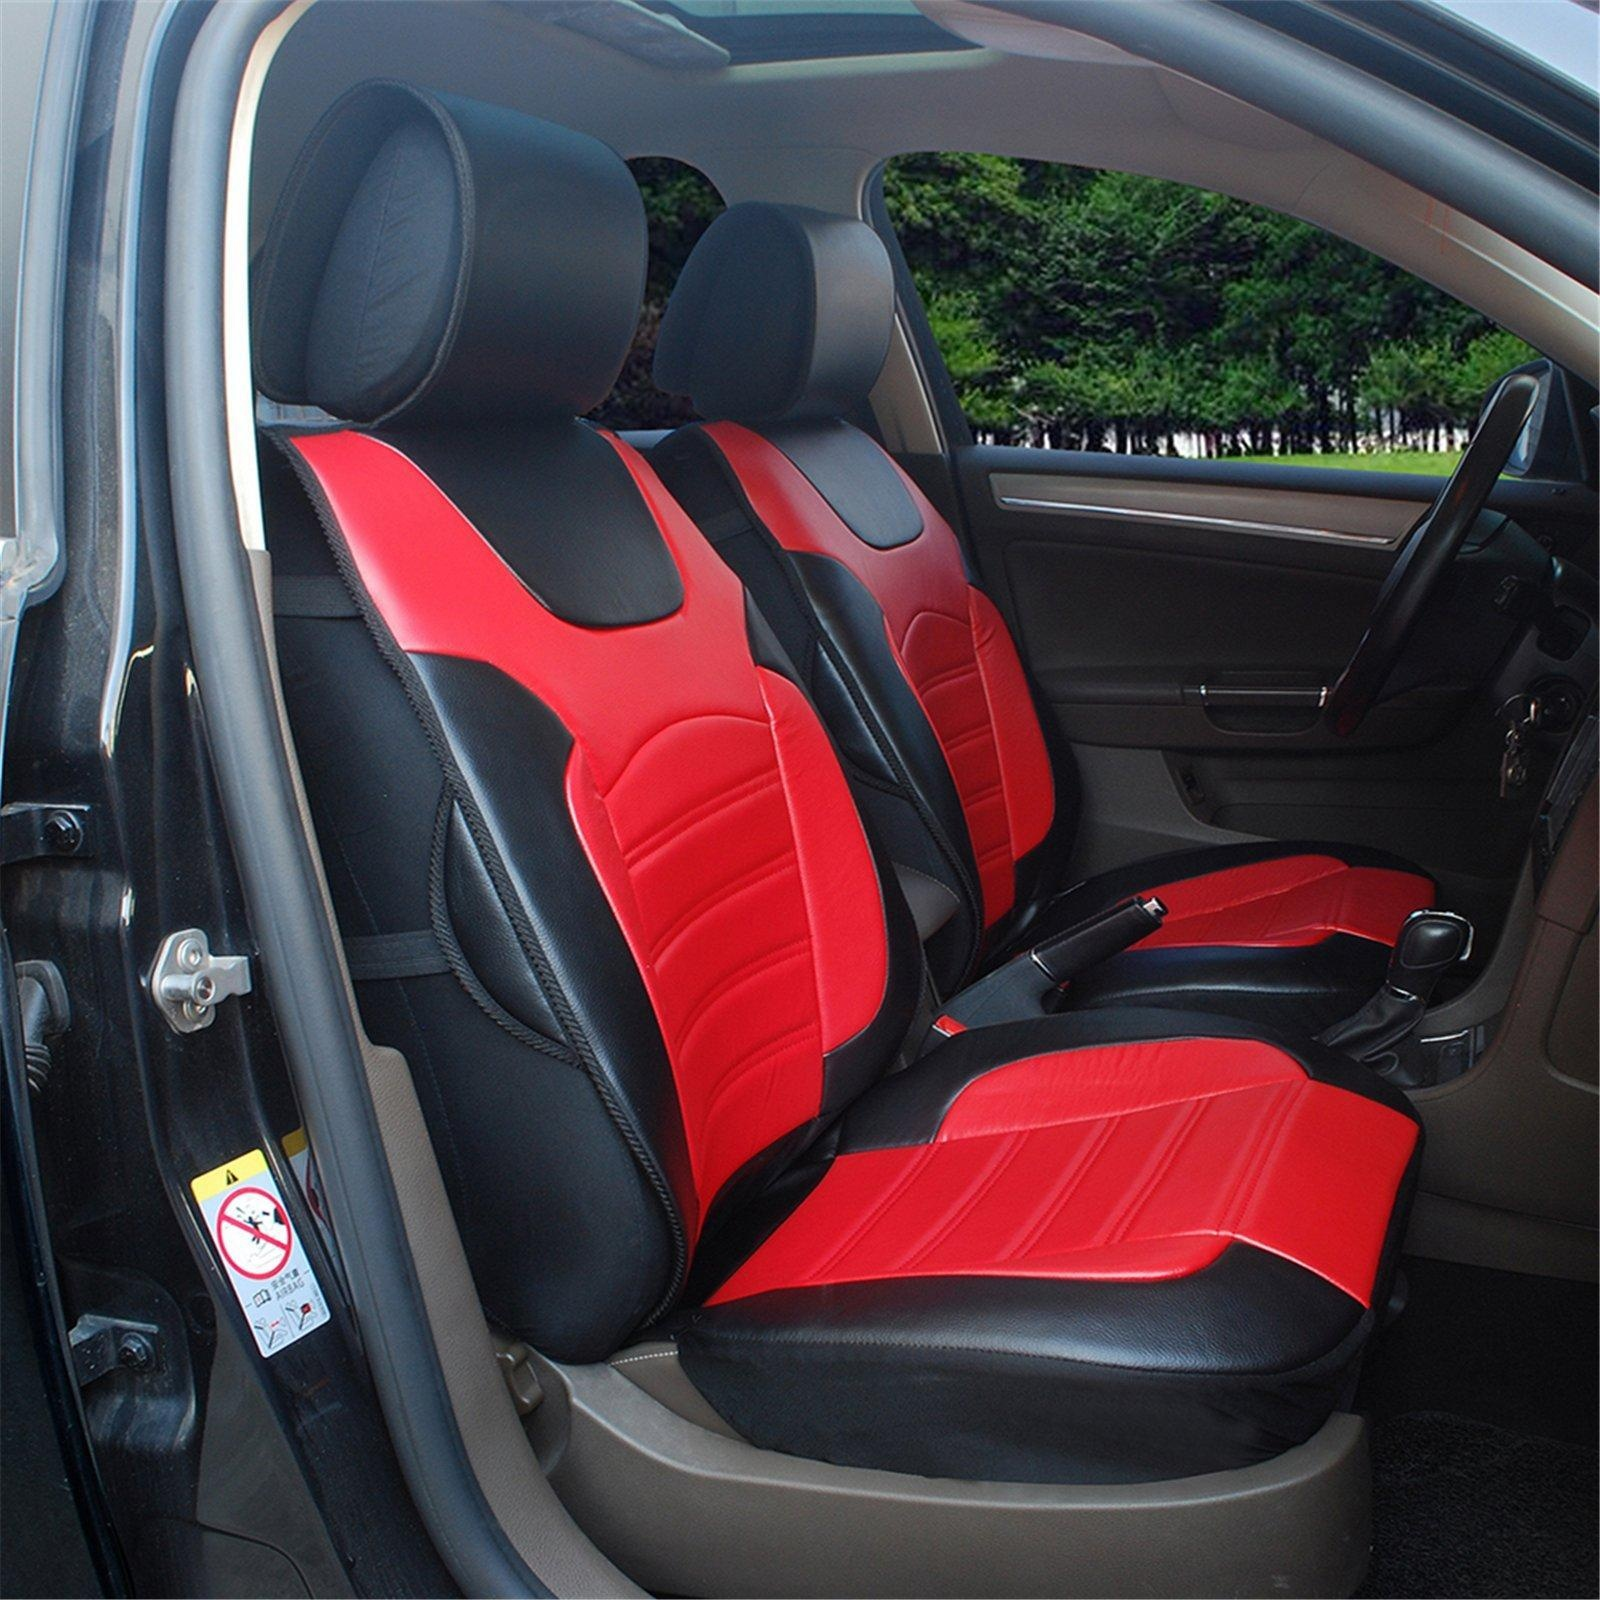 Online store 180208s black red 2 front car seat cover cushions